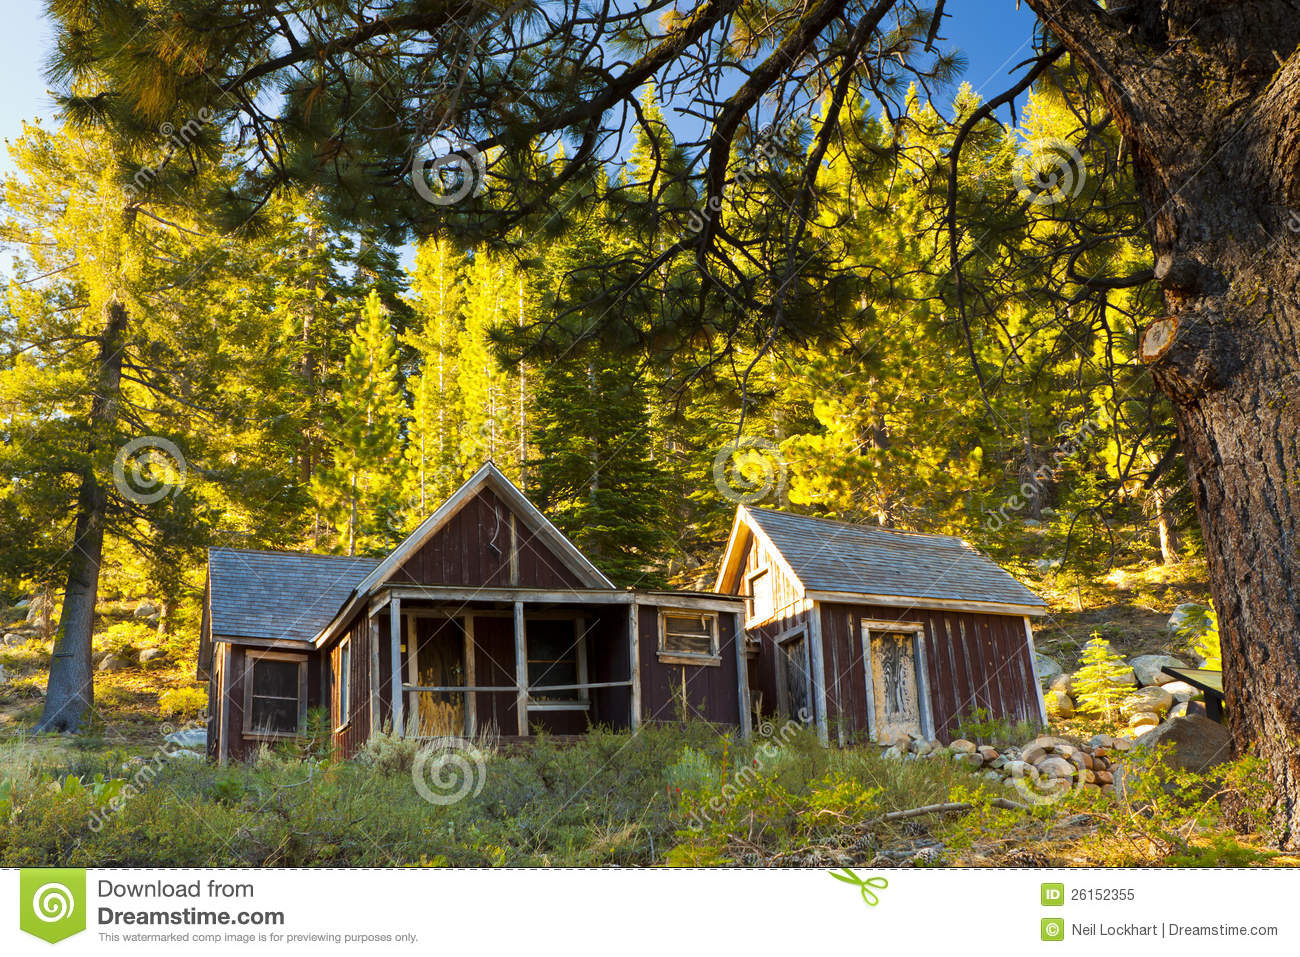 Old red house in the woods royalty free stock photo image 26152355 - The house in the woods ...